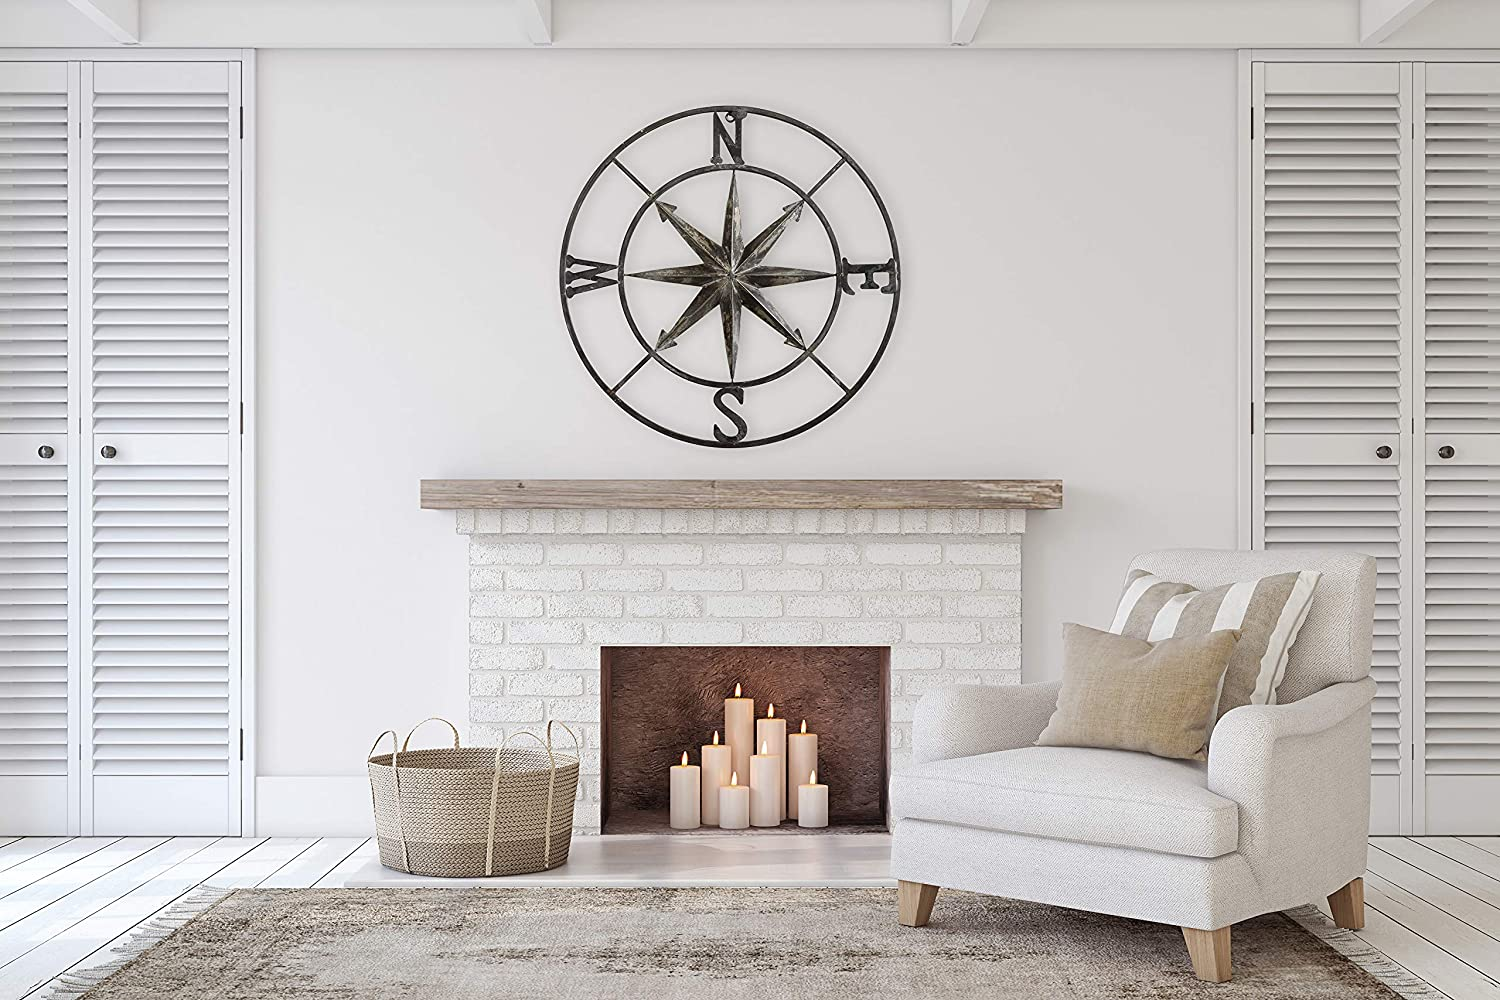 Decorative Round Metal Compass Wall Décor